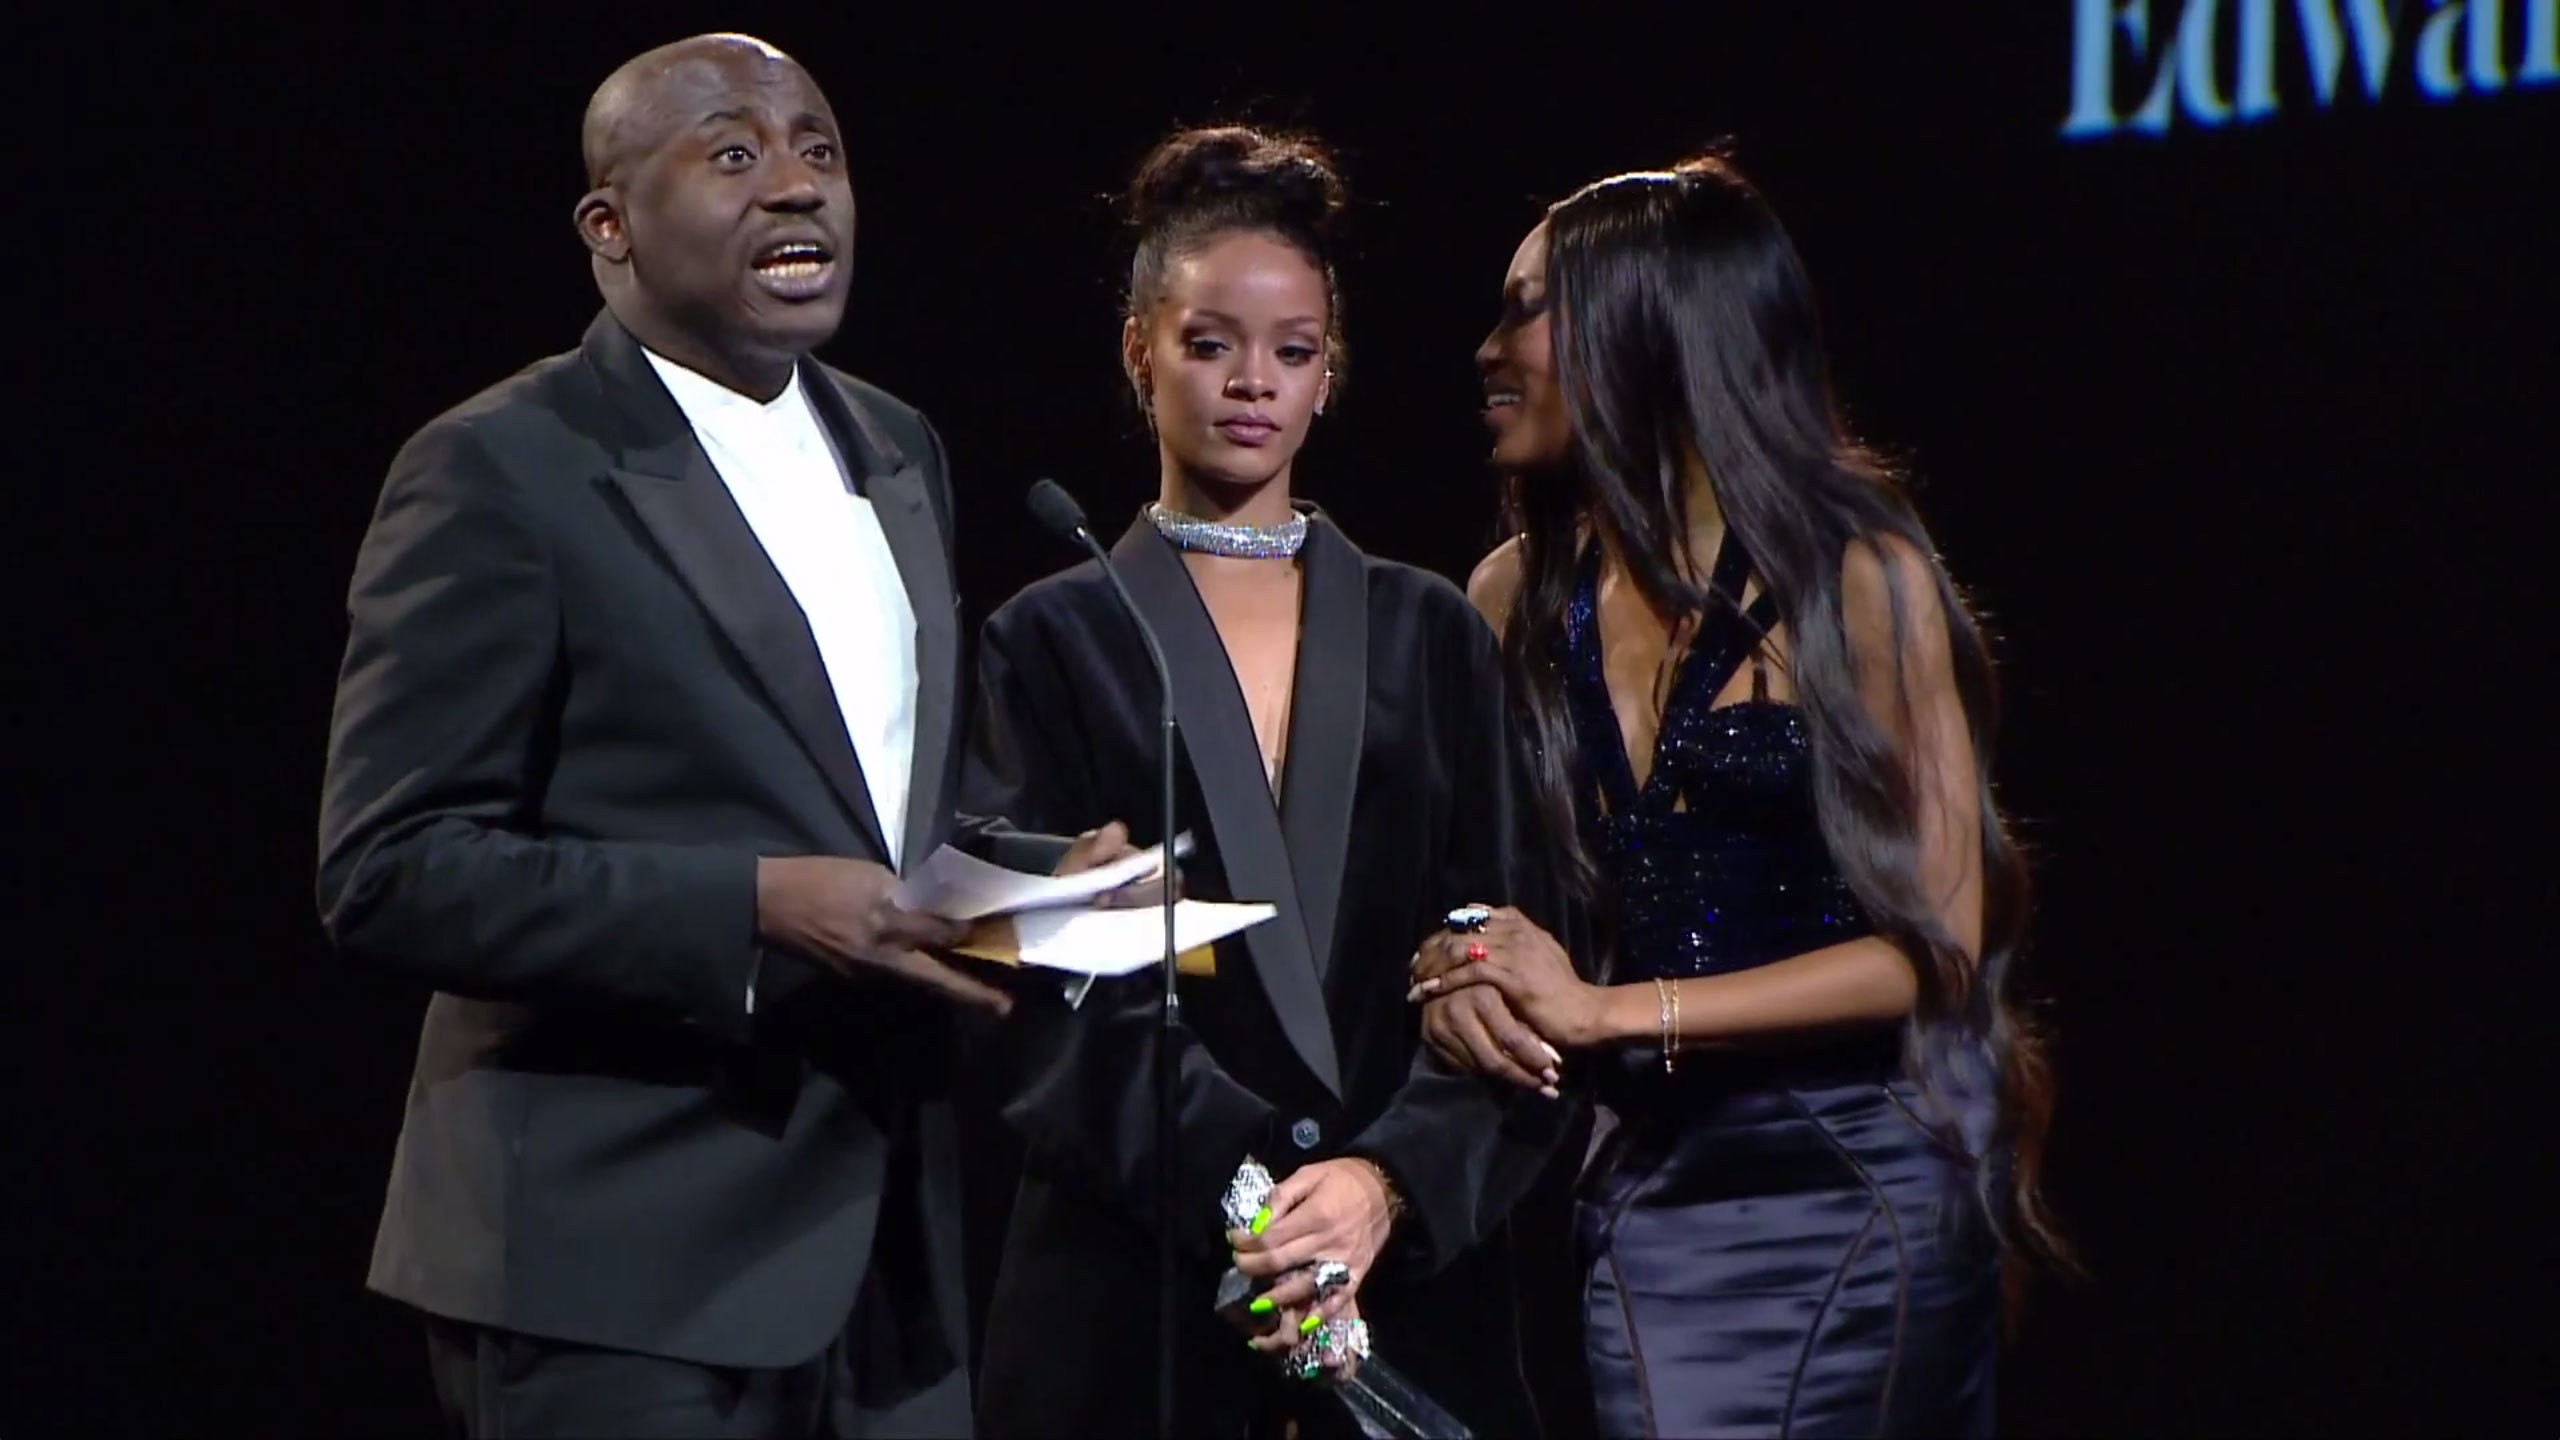 edward enninful's call to the youth of today at last nights BFA's